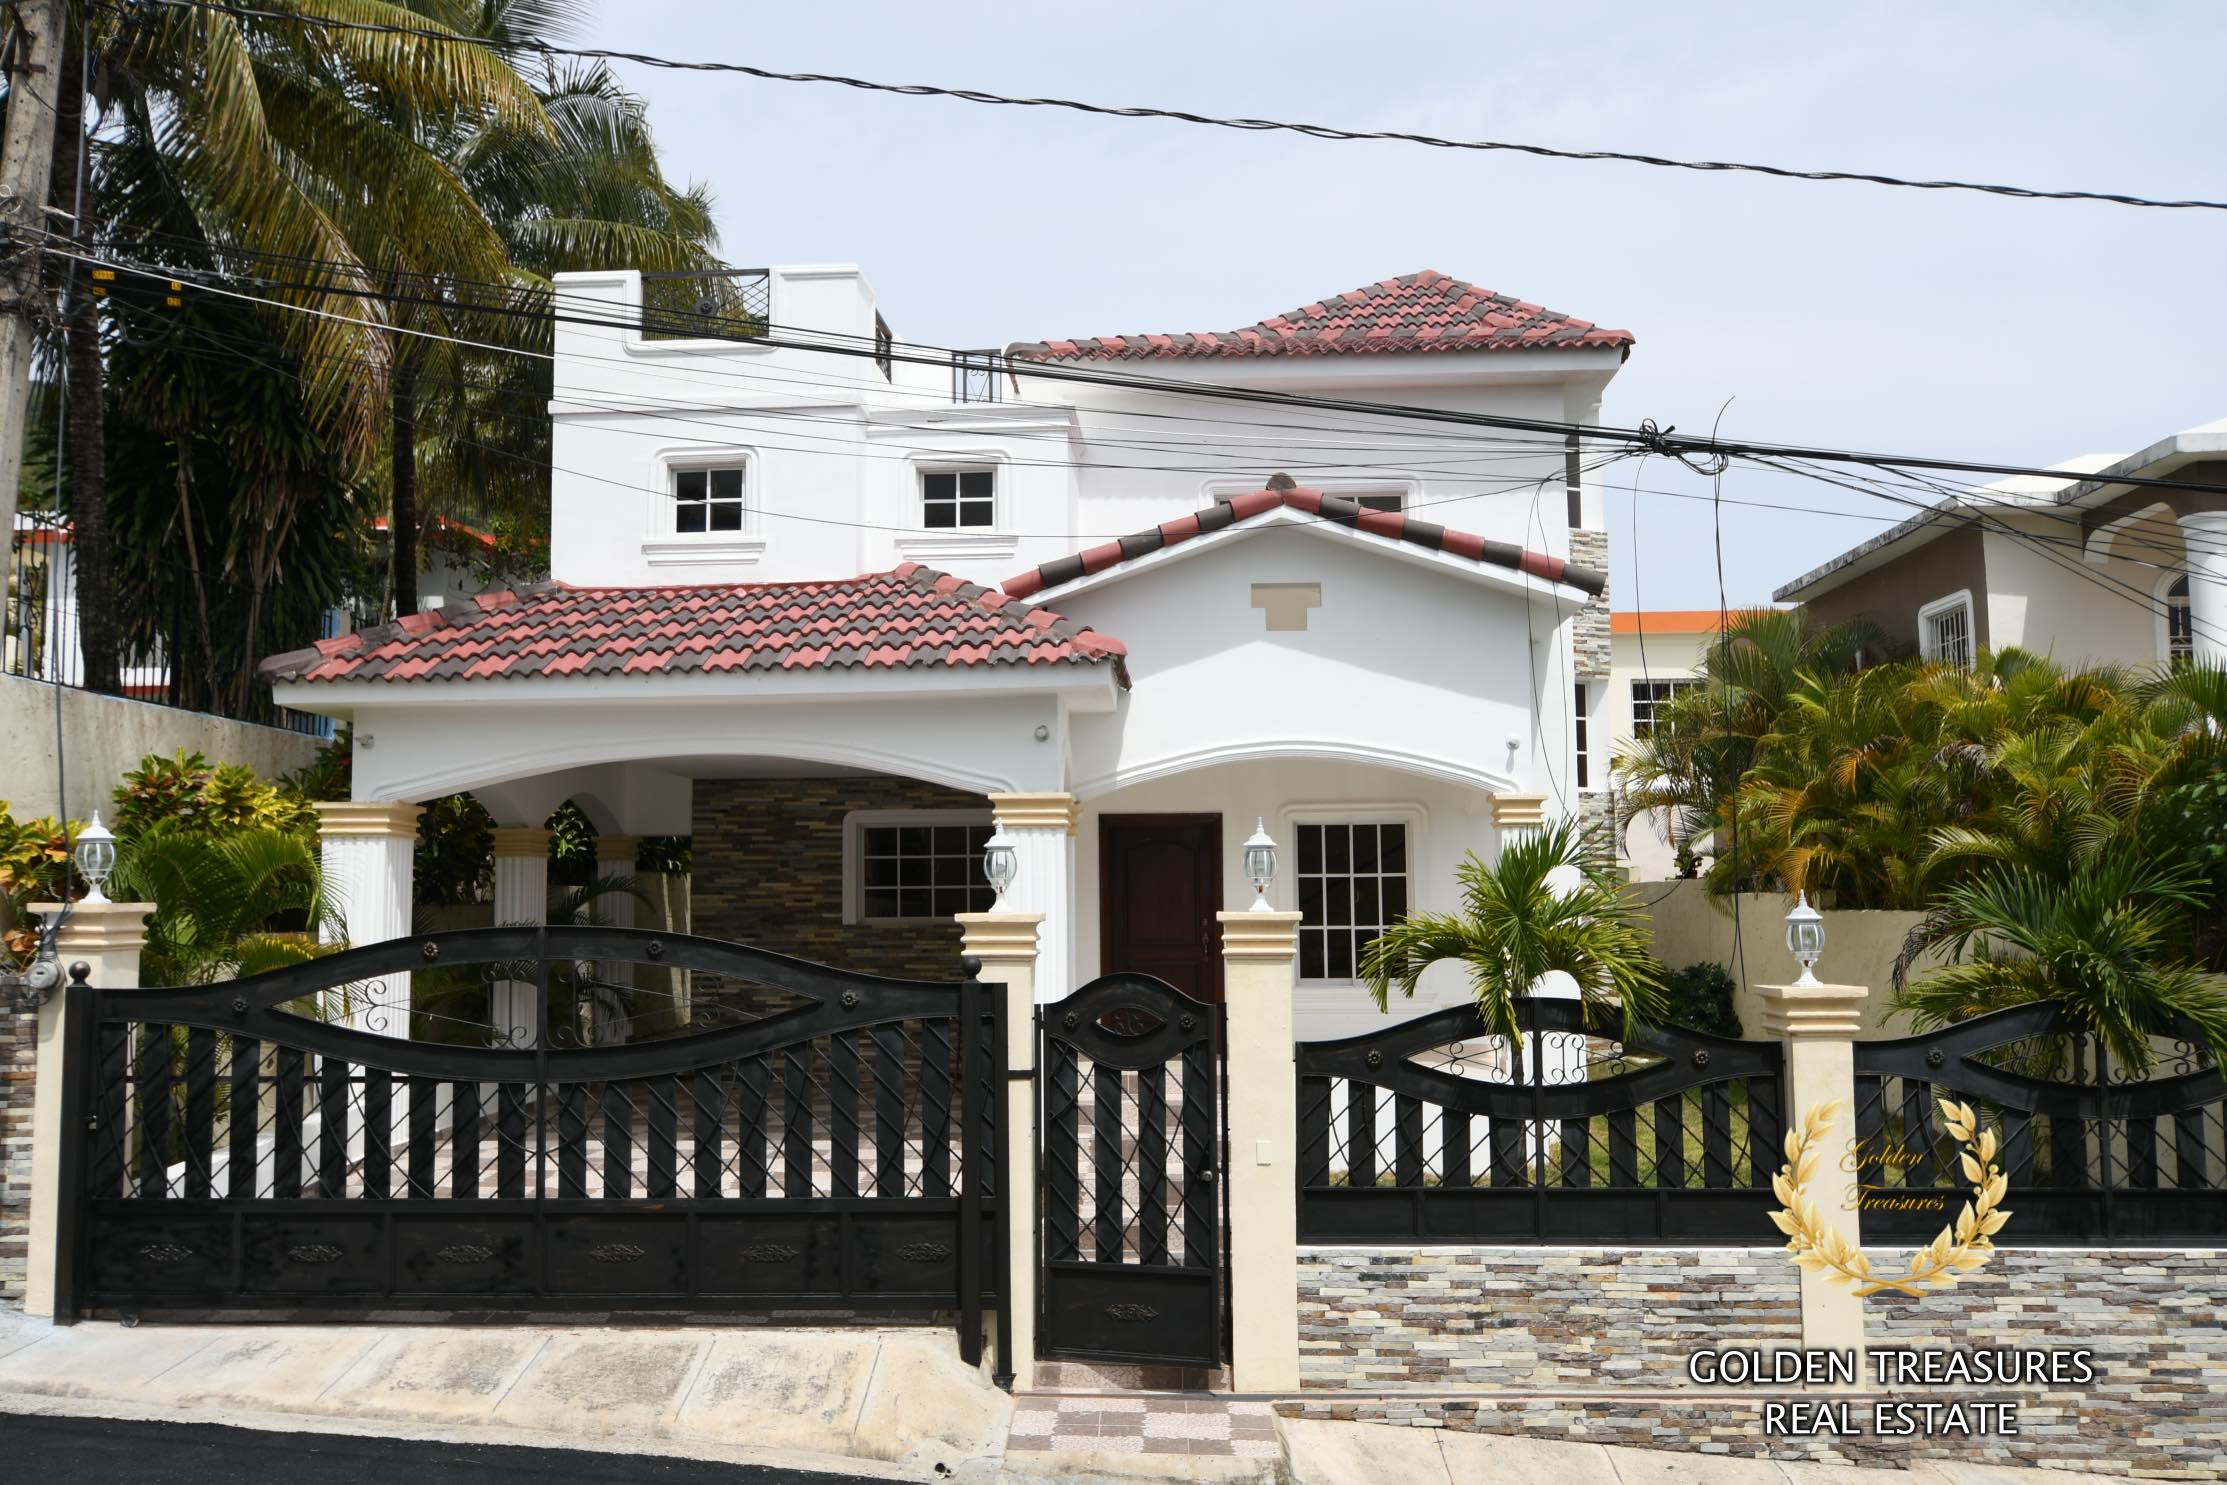 3 Bedroom Home Sale Puerto Plata DR